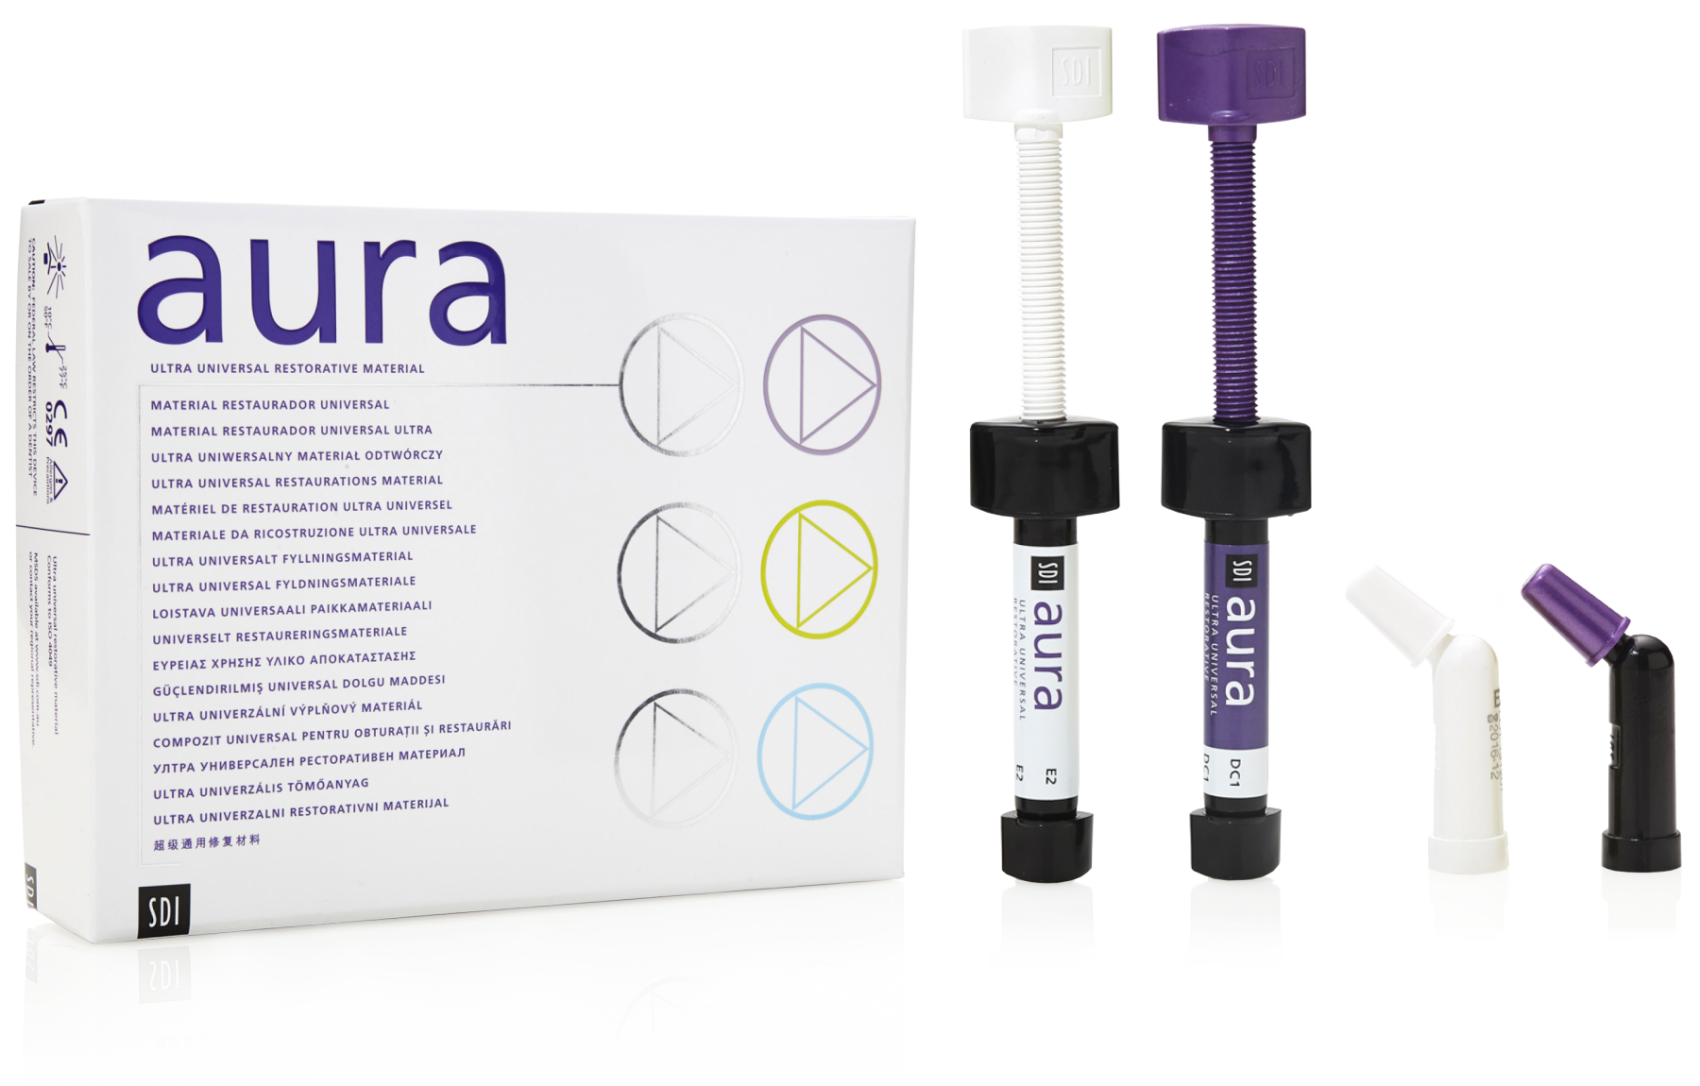 aura box and syringes